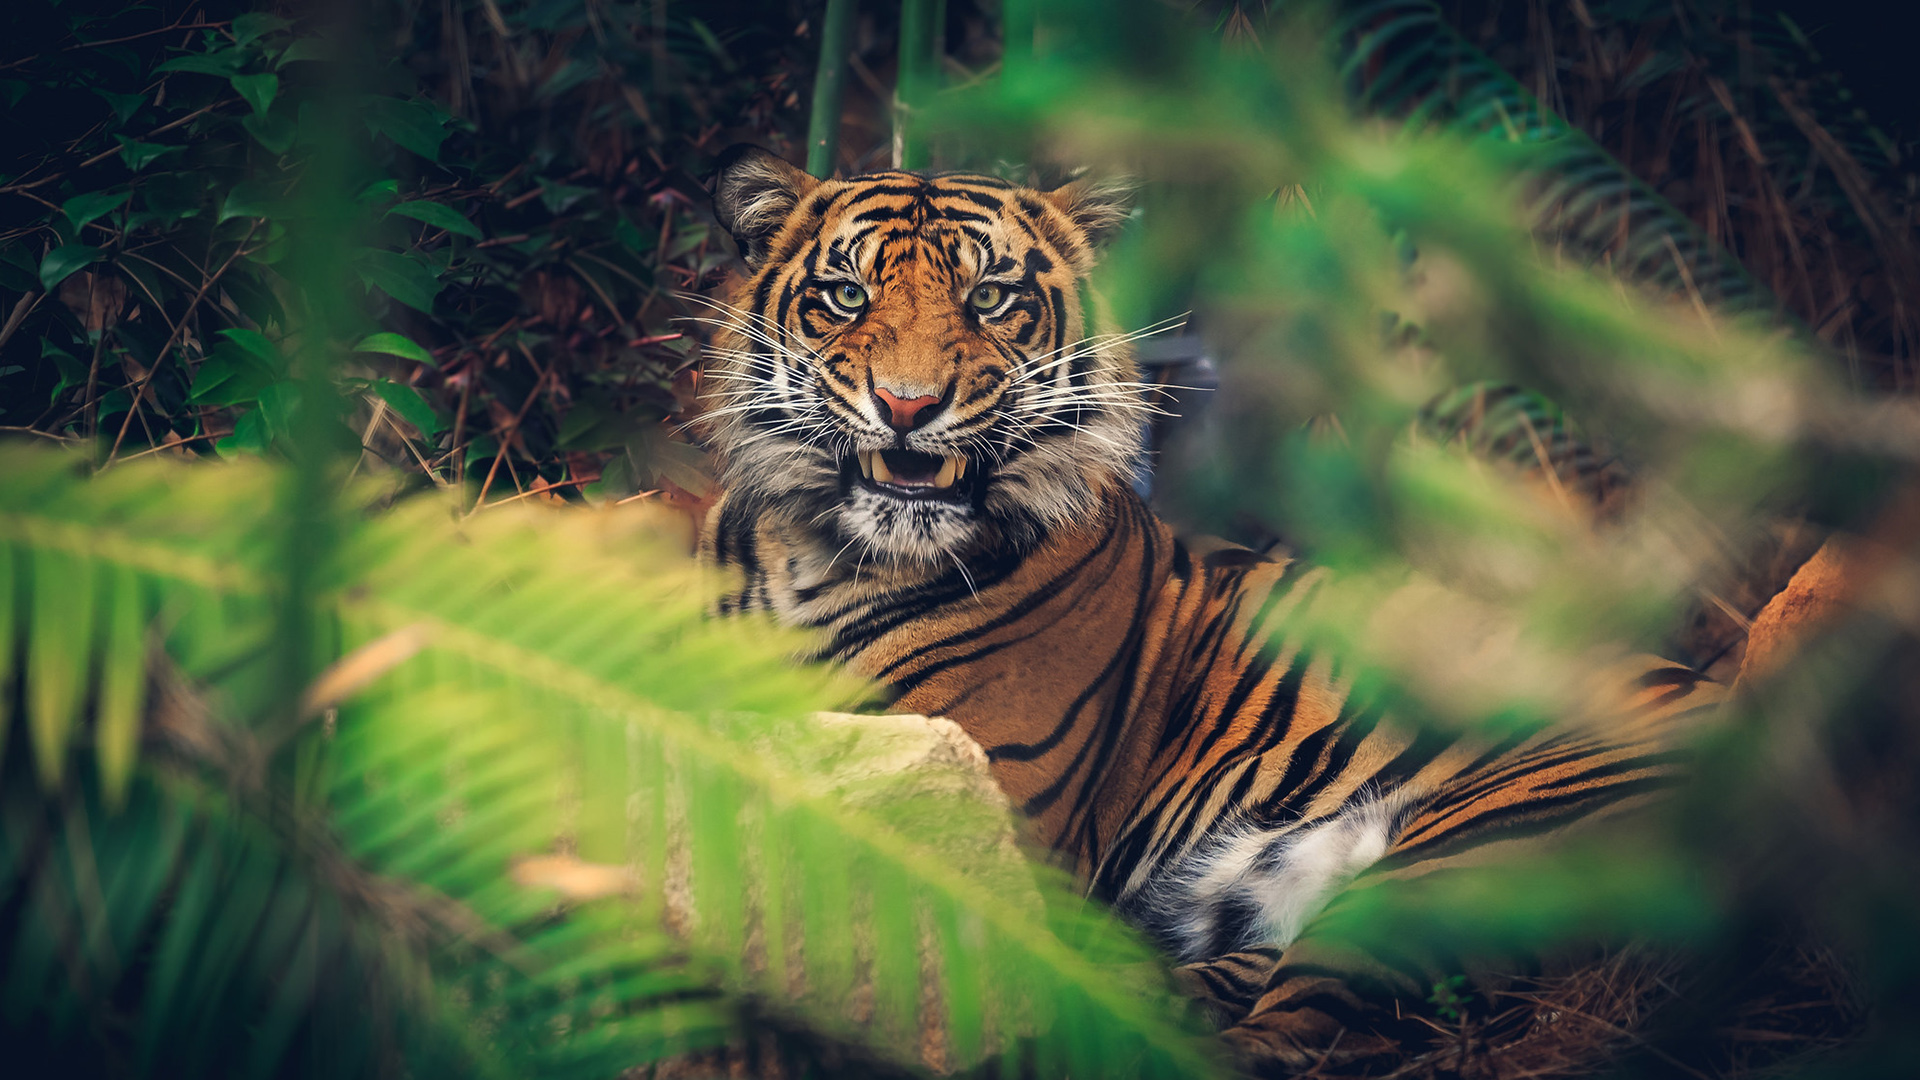 Windows 10 3d Wallpapers Moving Tiger Full Hd Wallpaper And Background 1920x1080 Id 551961